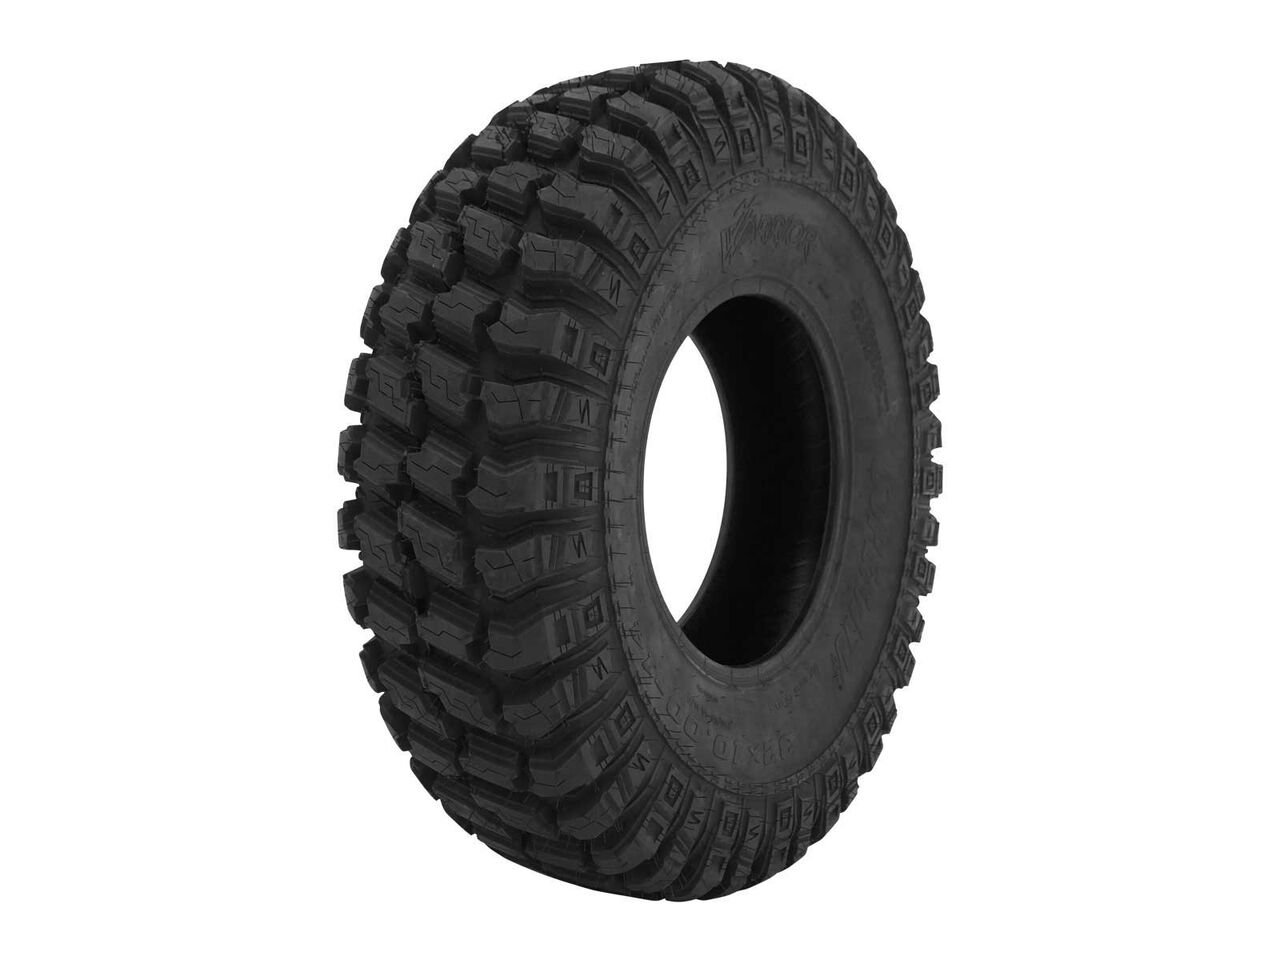 SuperATV A/T Warrior Road Tire - DOT Approved - RZR, X3, General, Maverick, Ranger, Rock & All Terrain UTV - 30'' - Standard by SuperATV.com